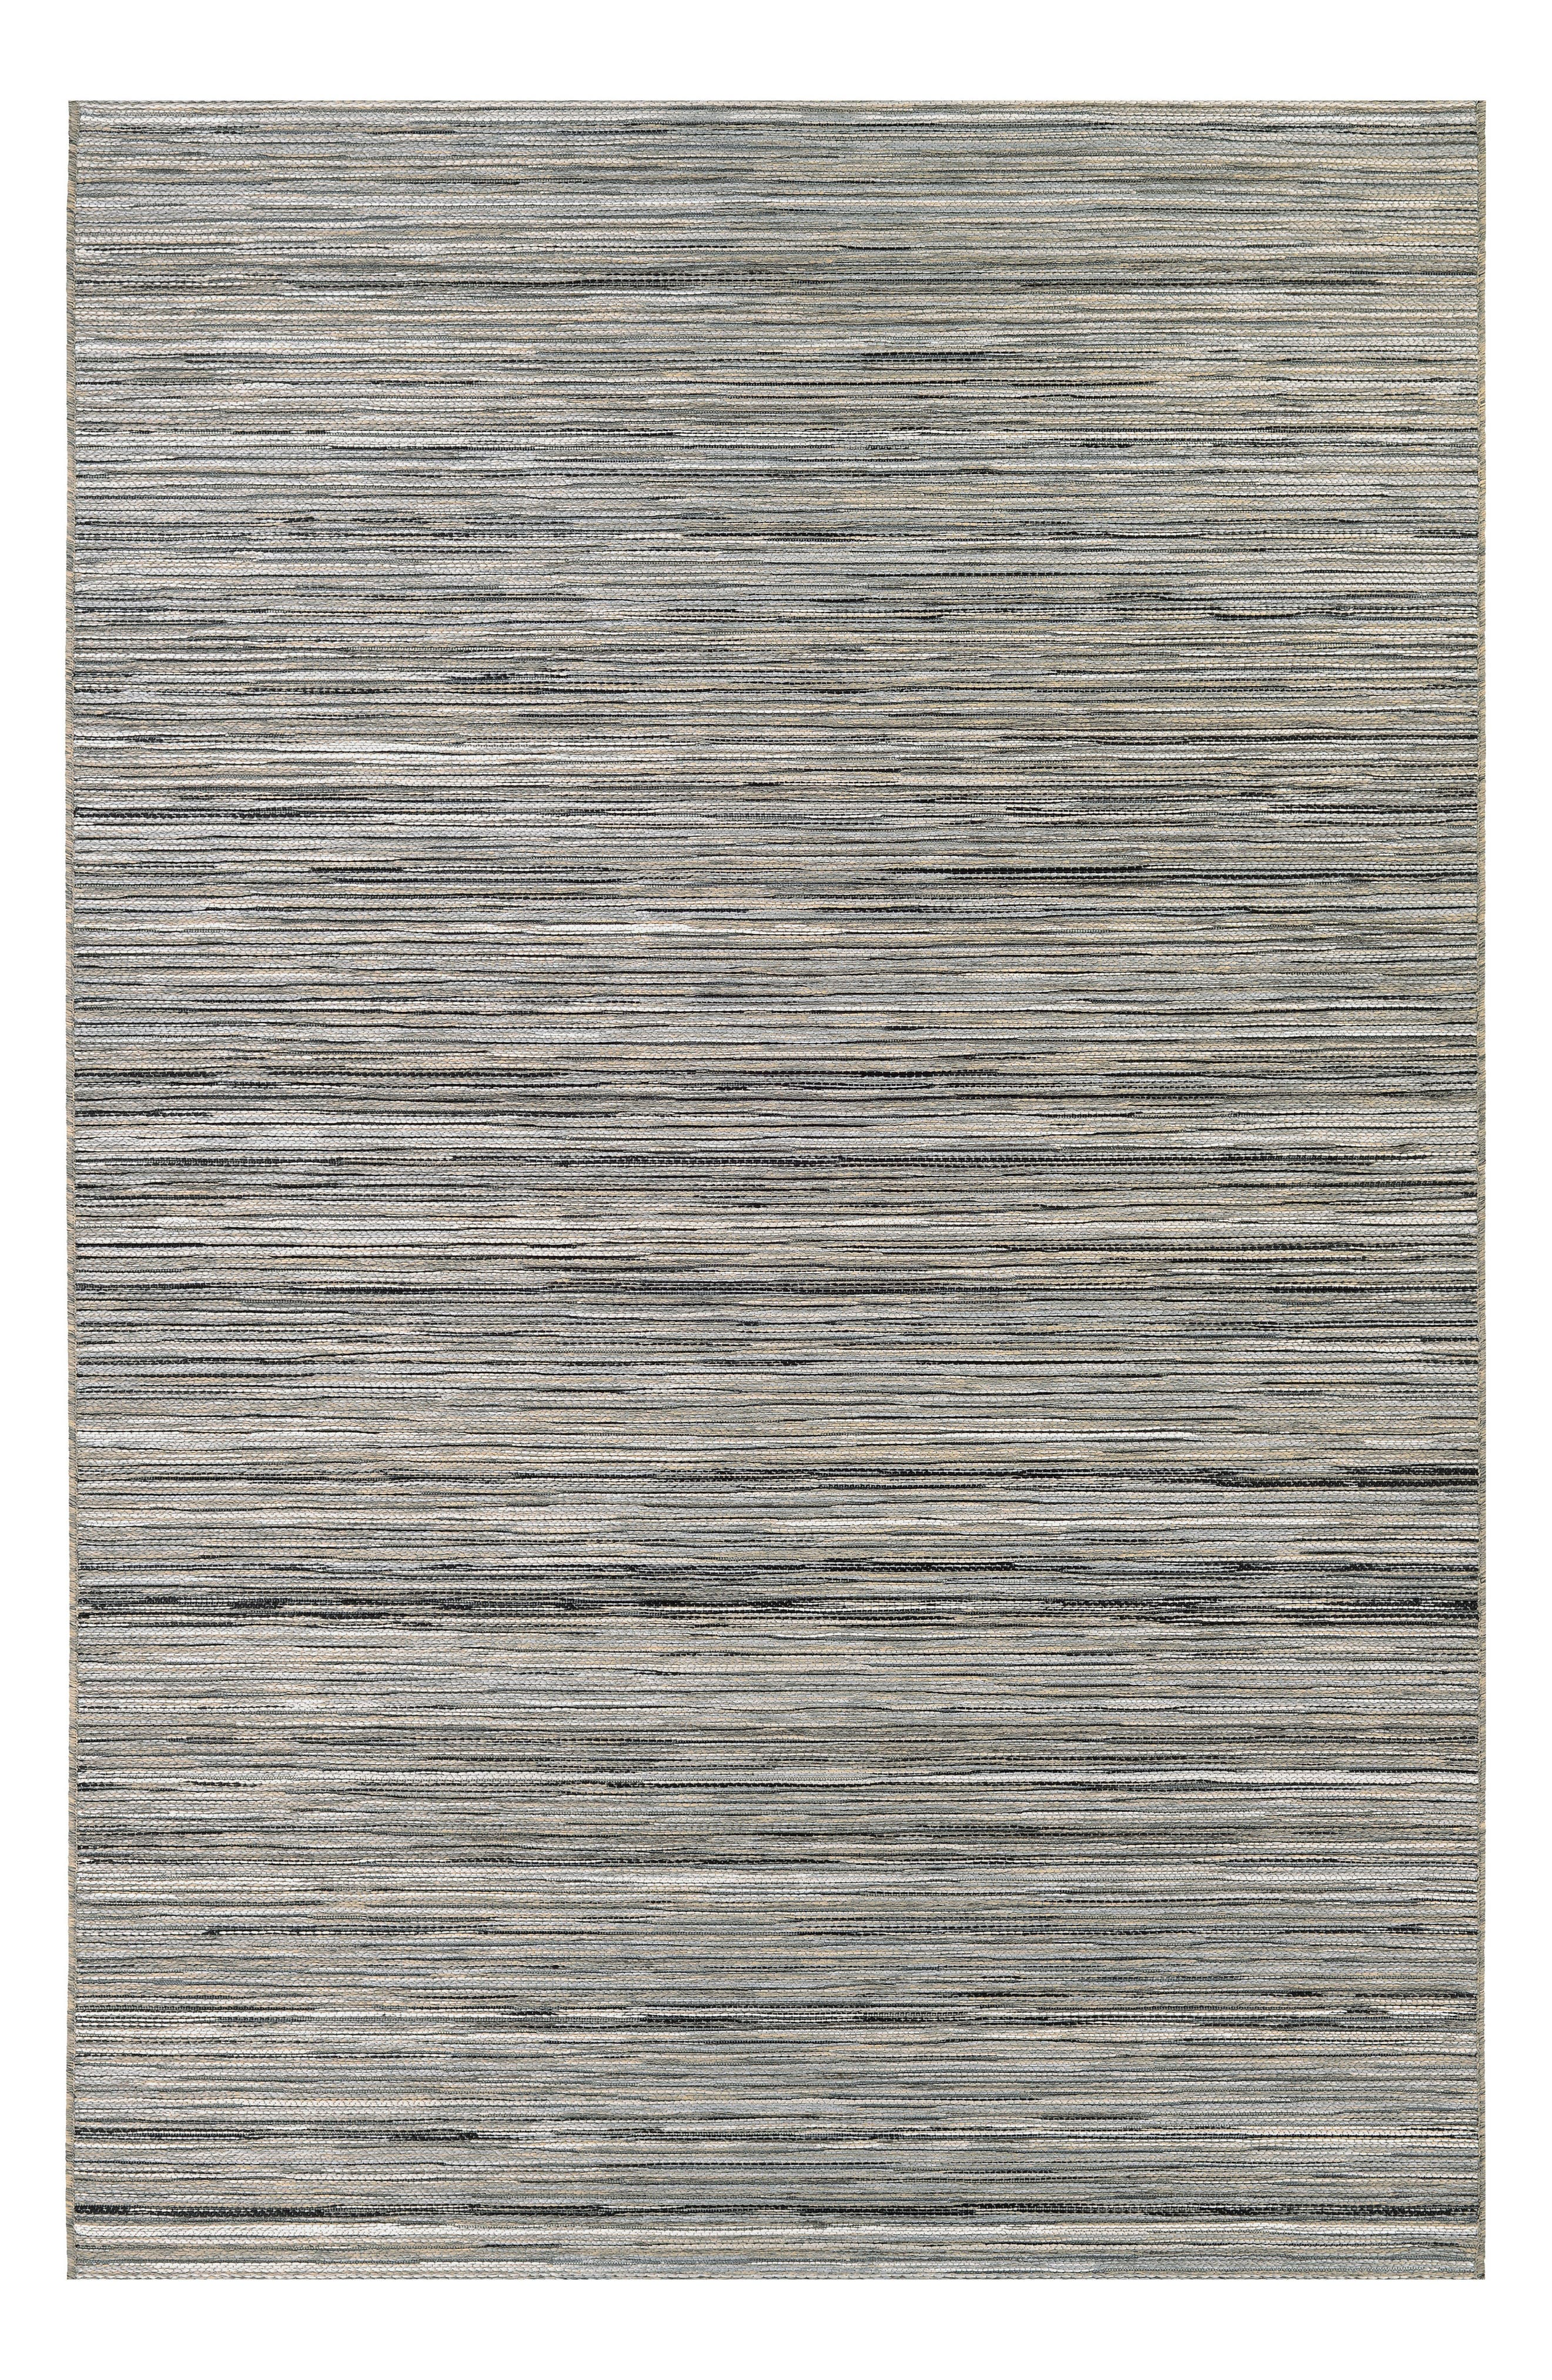 Hinsdale Indoor/Outdoor Rug,                         Main,                         color, 025